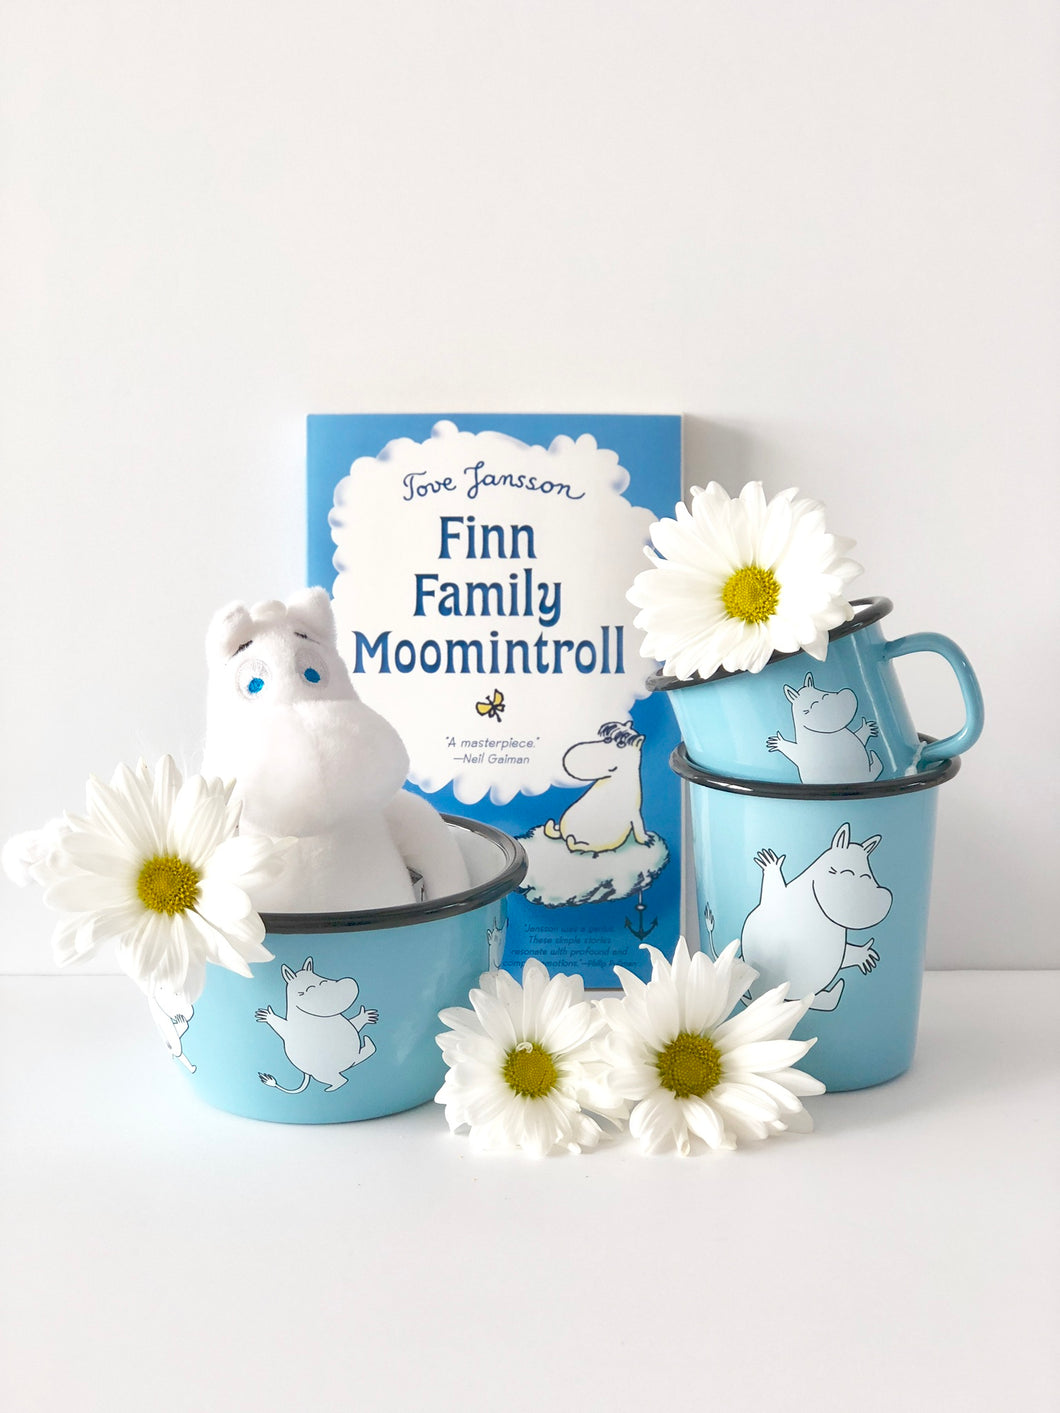 Finn Family Moomintroll Novel